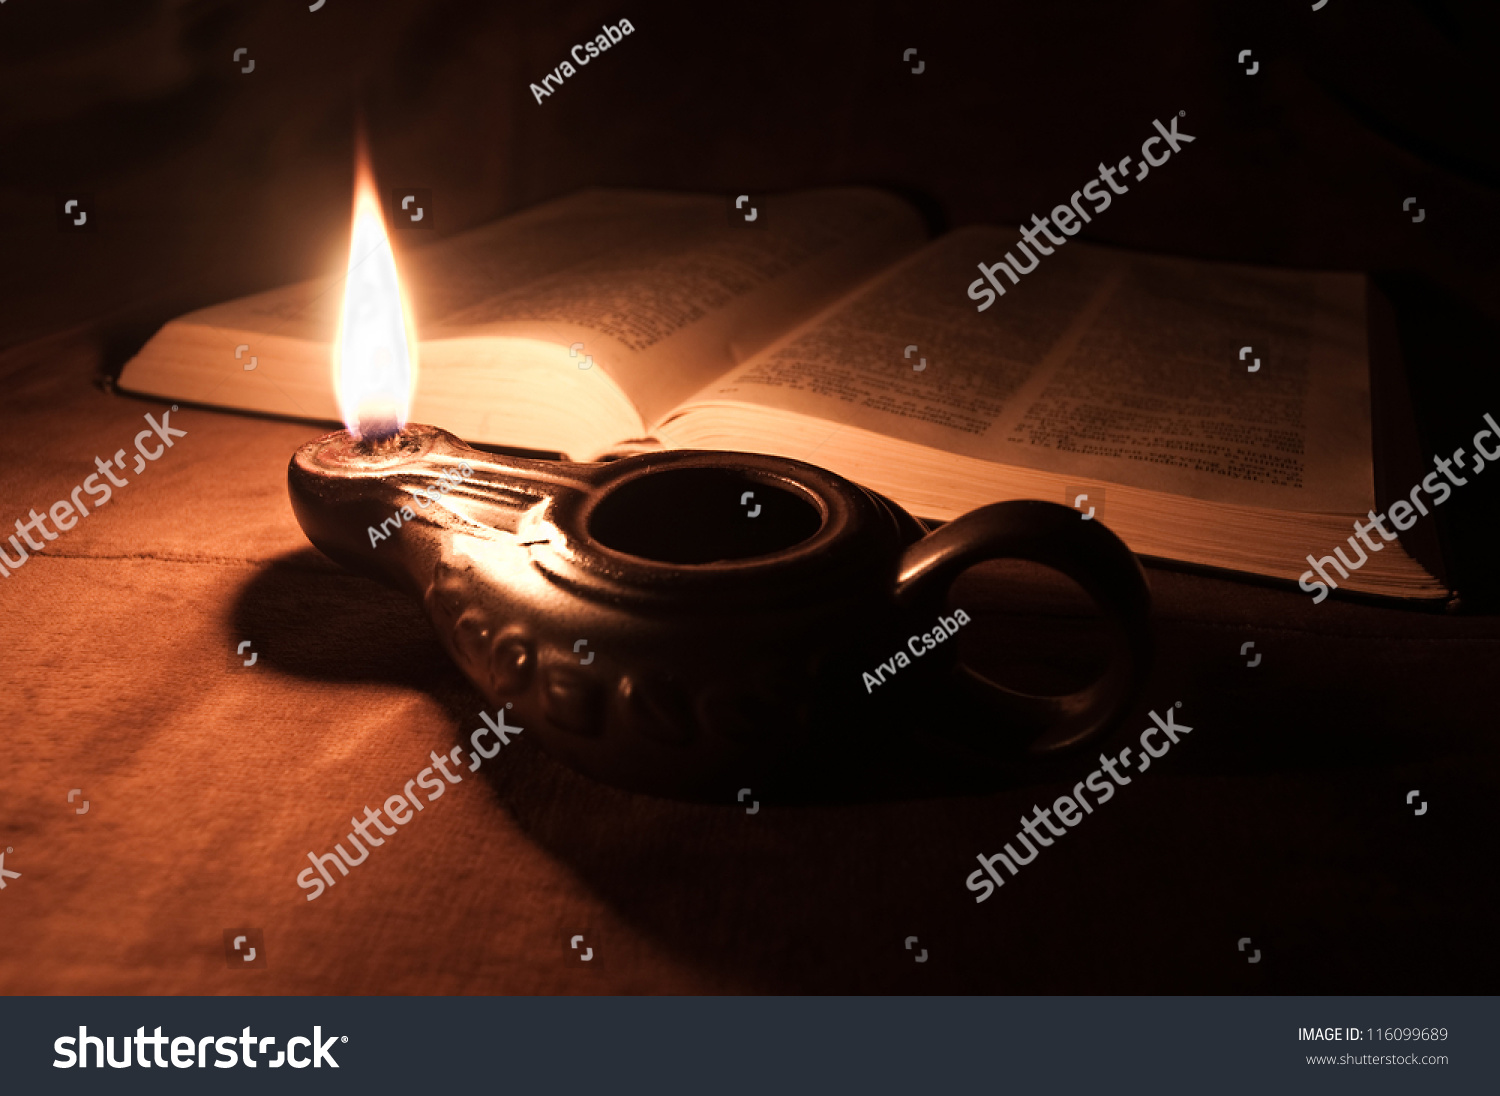 lamp and bible - photo #26